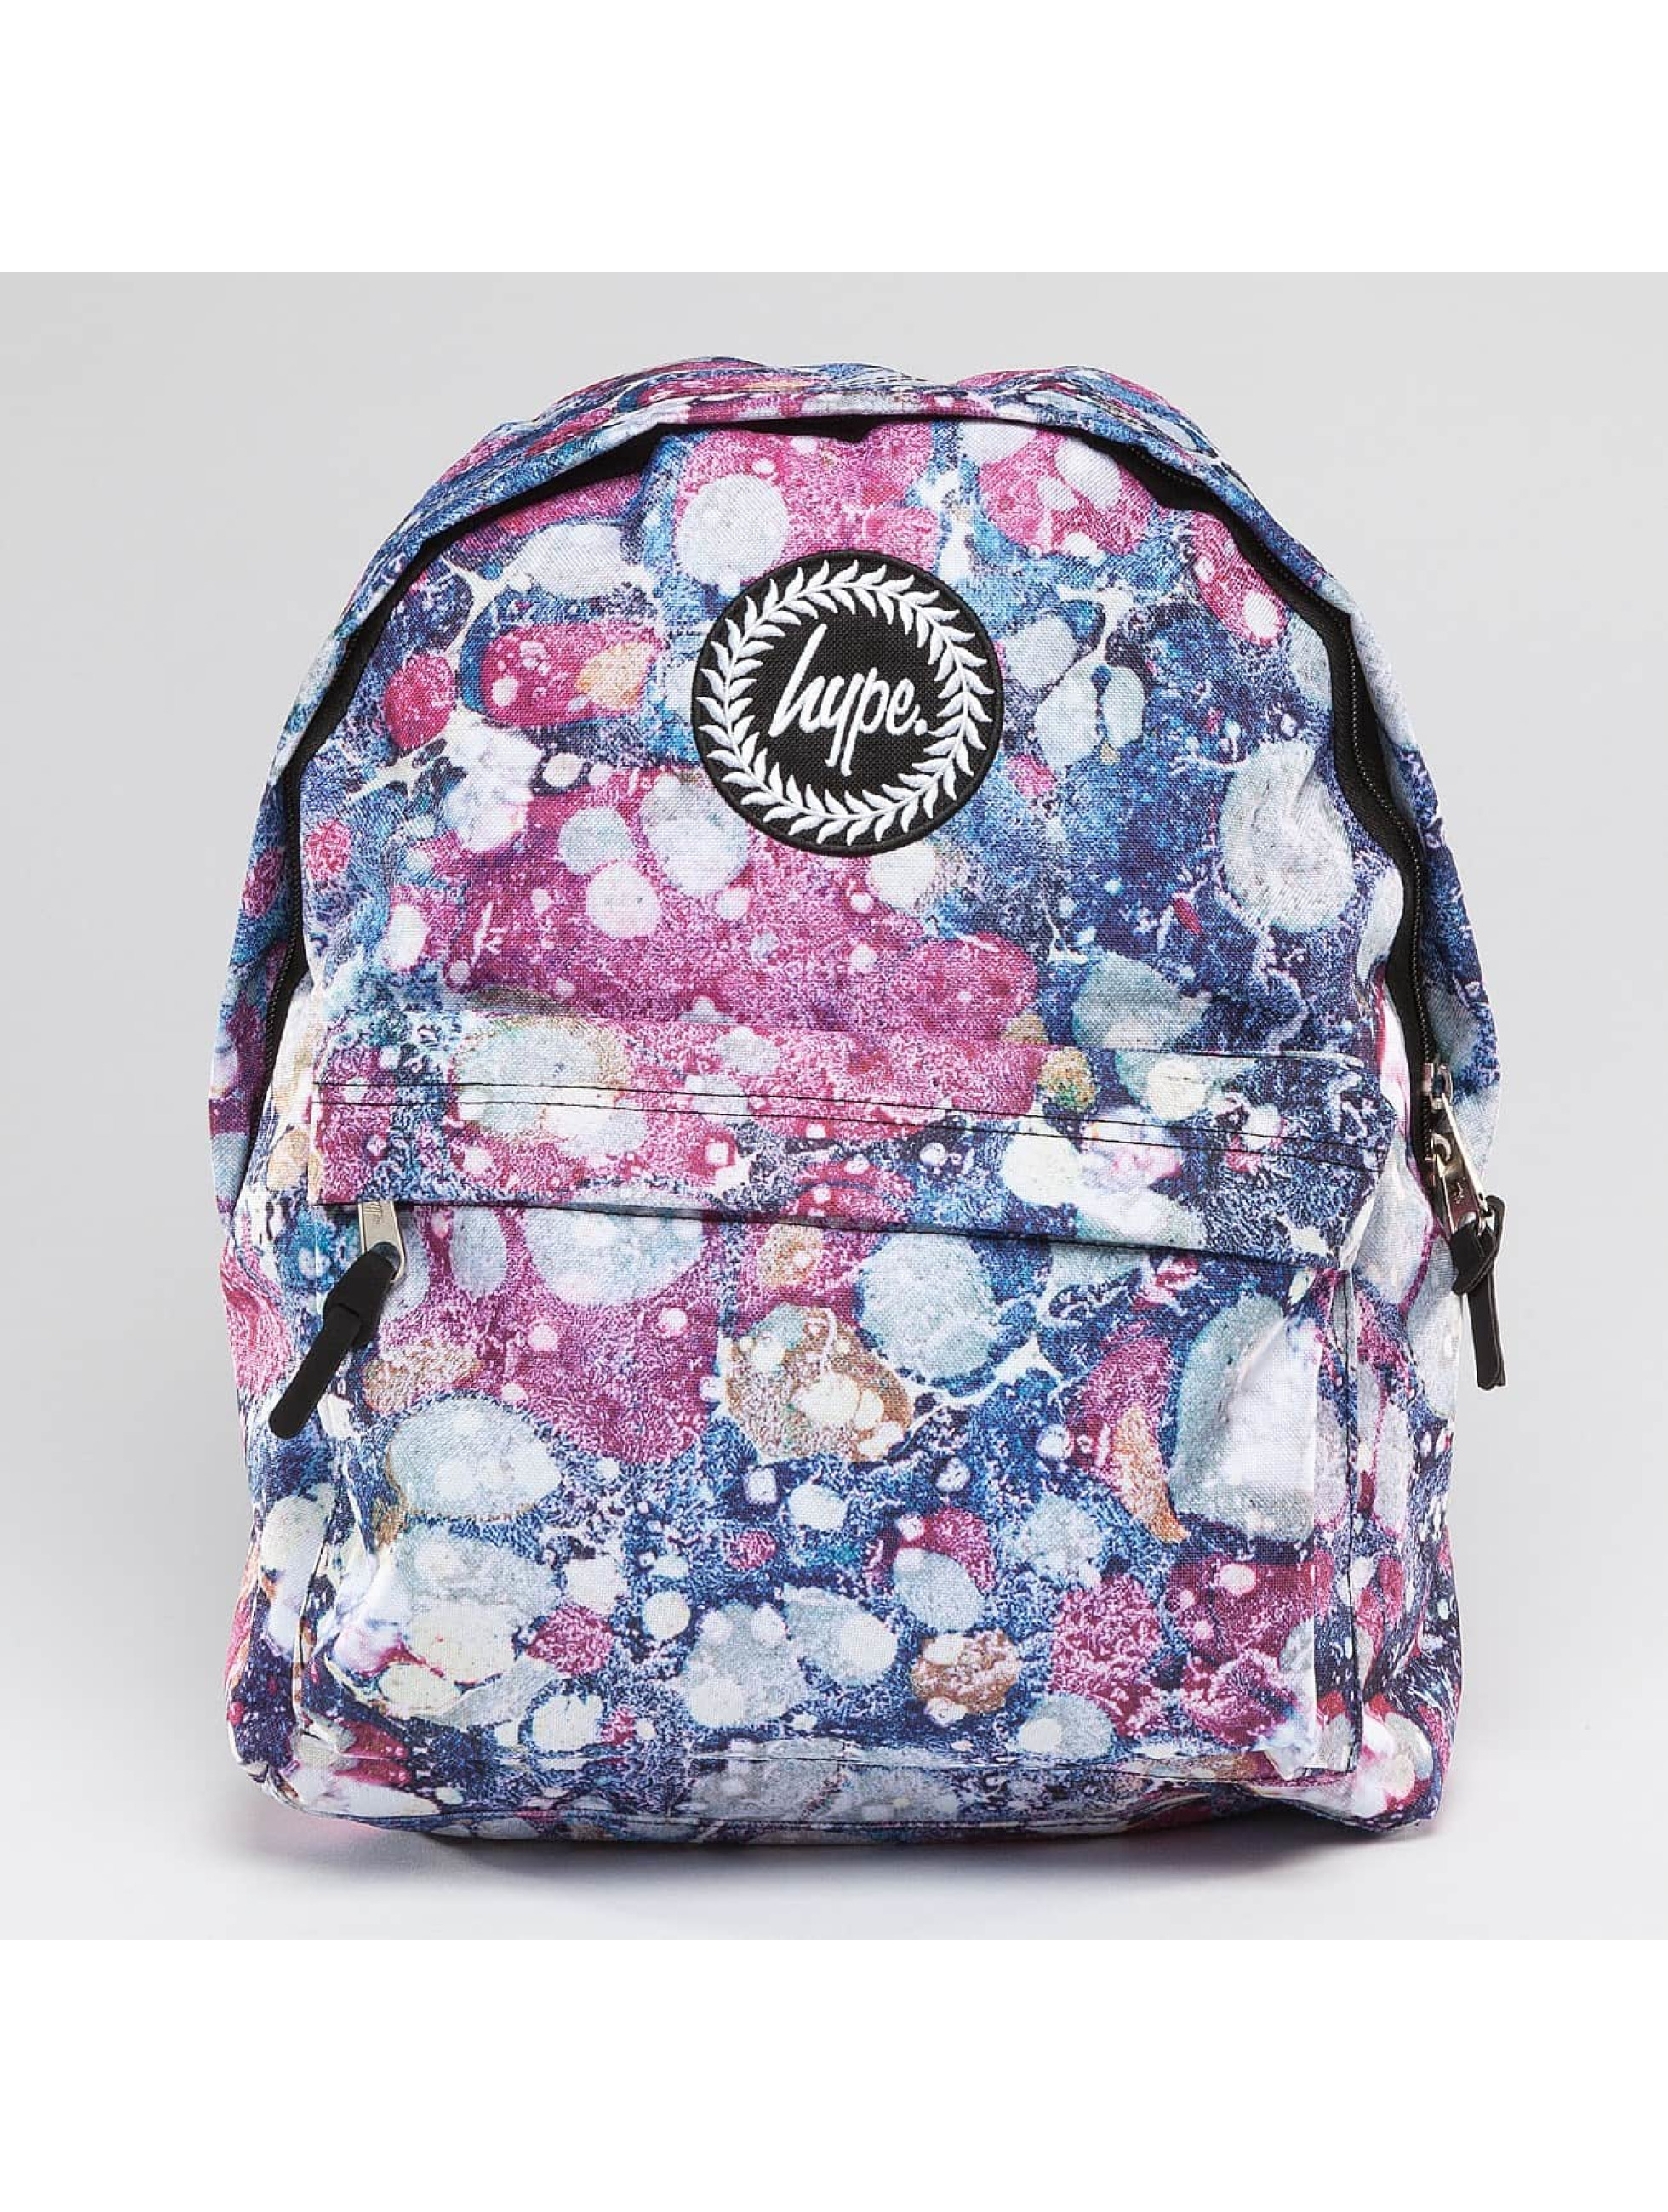 HYPE Backpack Marble Rush42 colored